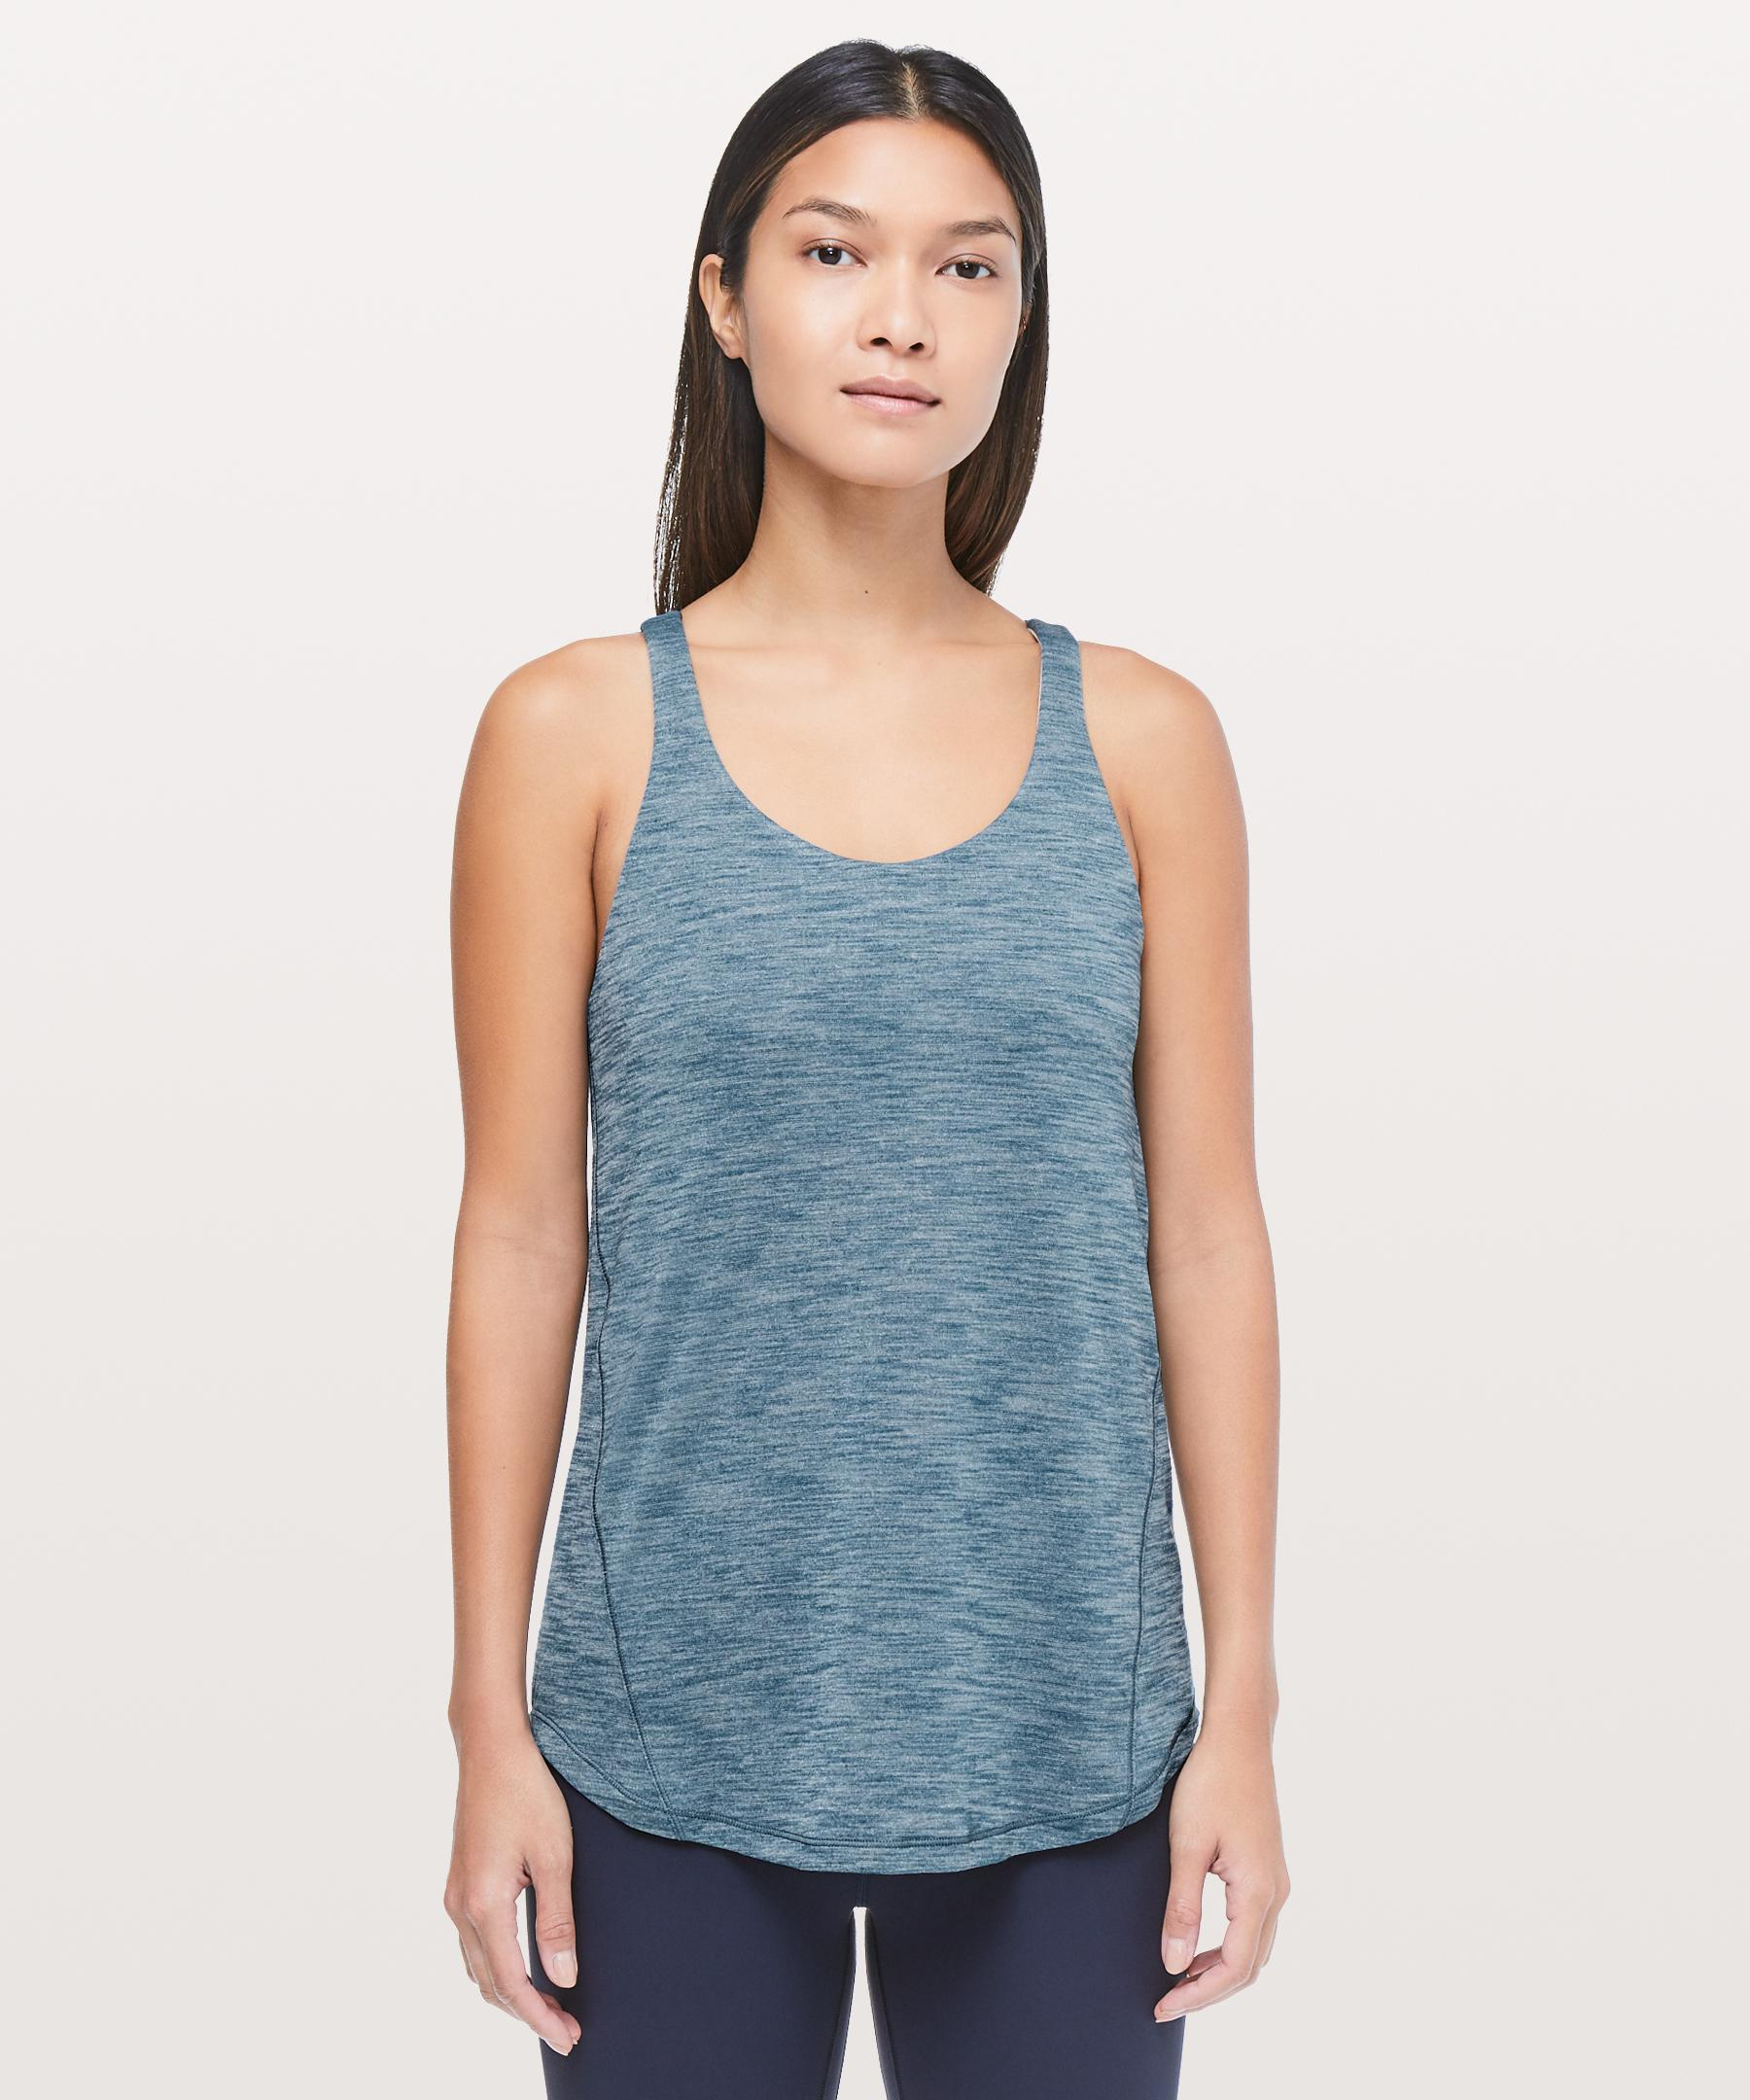 Lyst Lululemon Athletica Moment To Movement 2 In 1 Tank Blue Rvca Circuit Tshirt Shortsleeve Boys39 Gallery